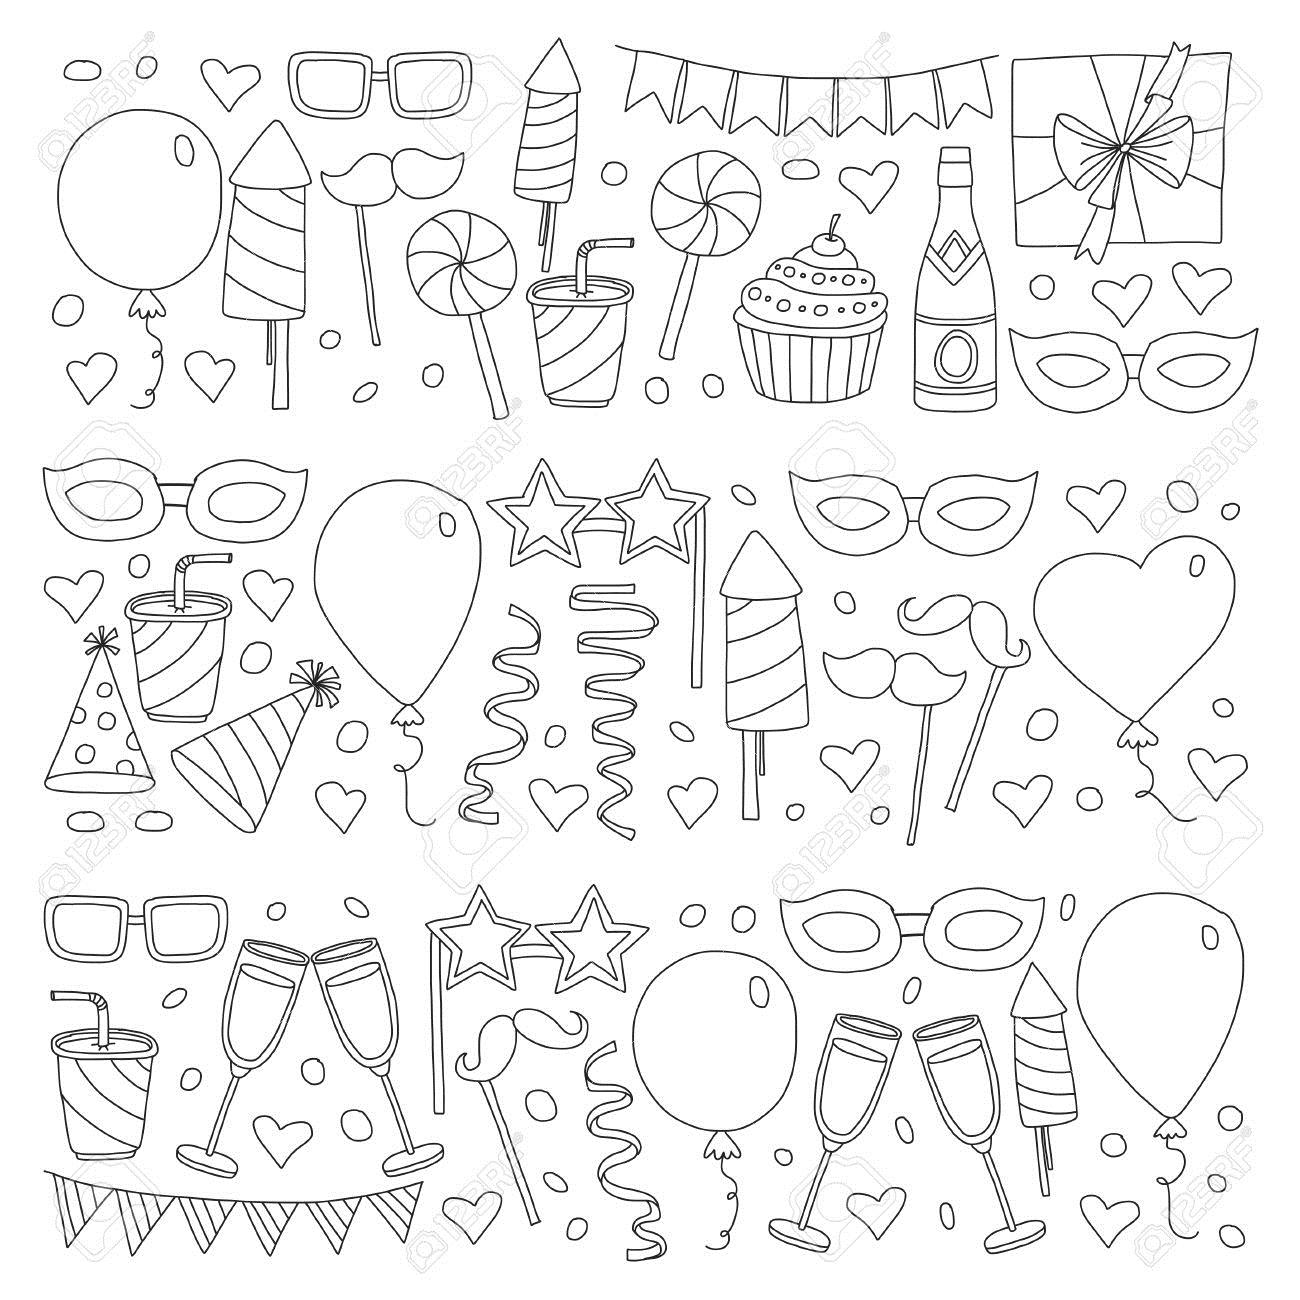 birthday party drawing ; 85817778-set-of-birthday-party-design-elements-kids-drawing-doodle-icons-colorful-balloons-flags-confetti-cup